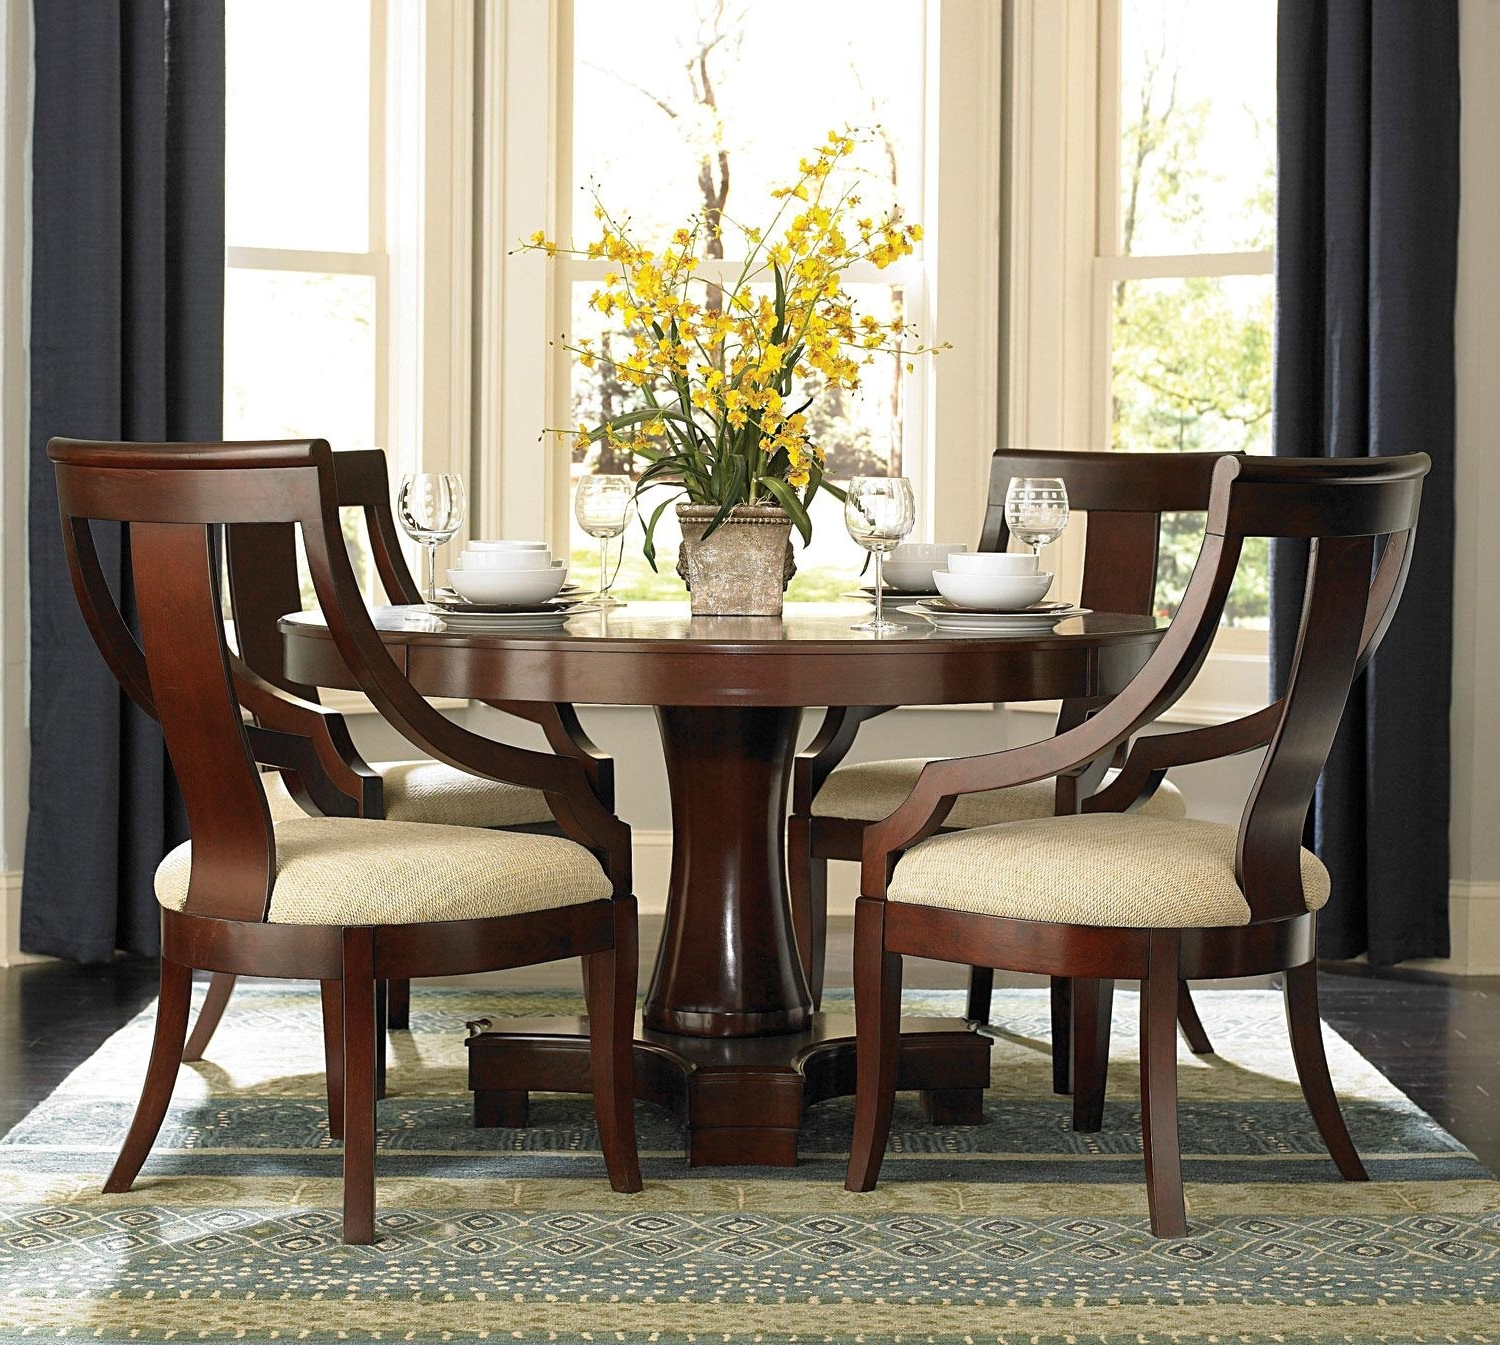 2018 Dining Room Dark Wood Table Big Dining Room Table Black Dining Table Regarding Big Dining Tables For Sale (Gallery 4 of 25)